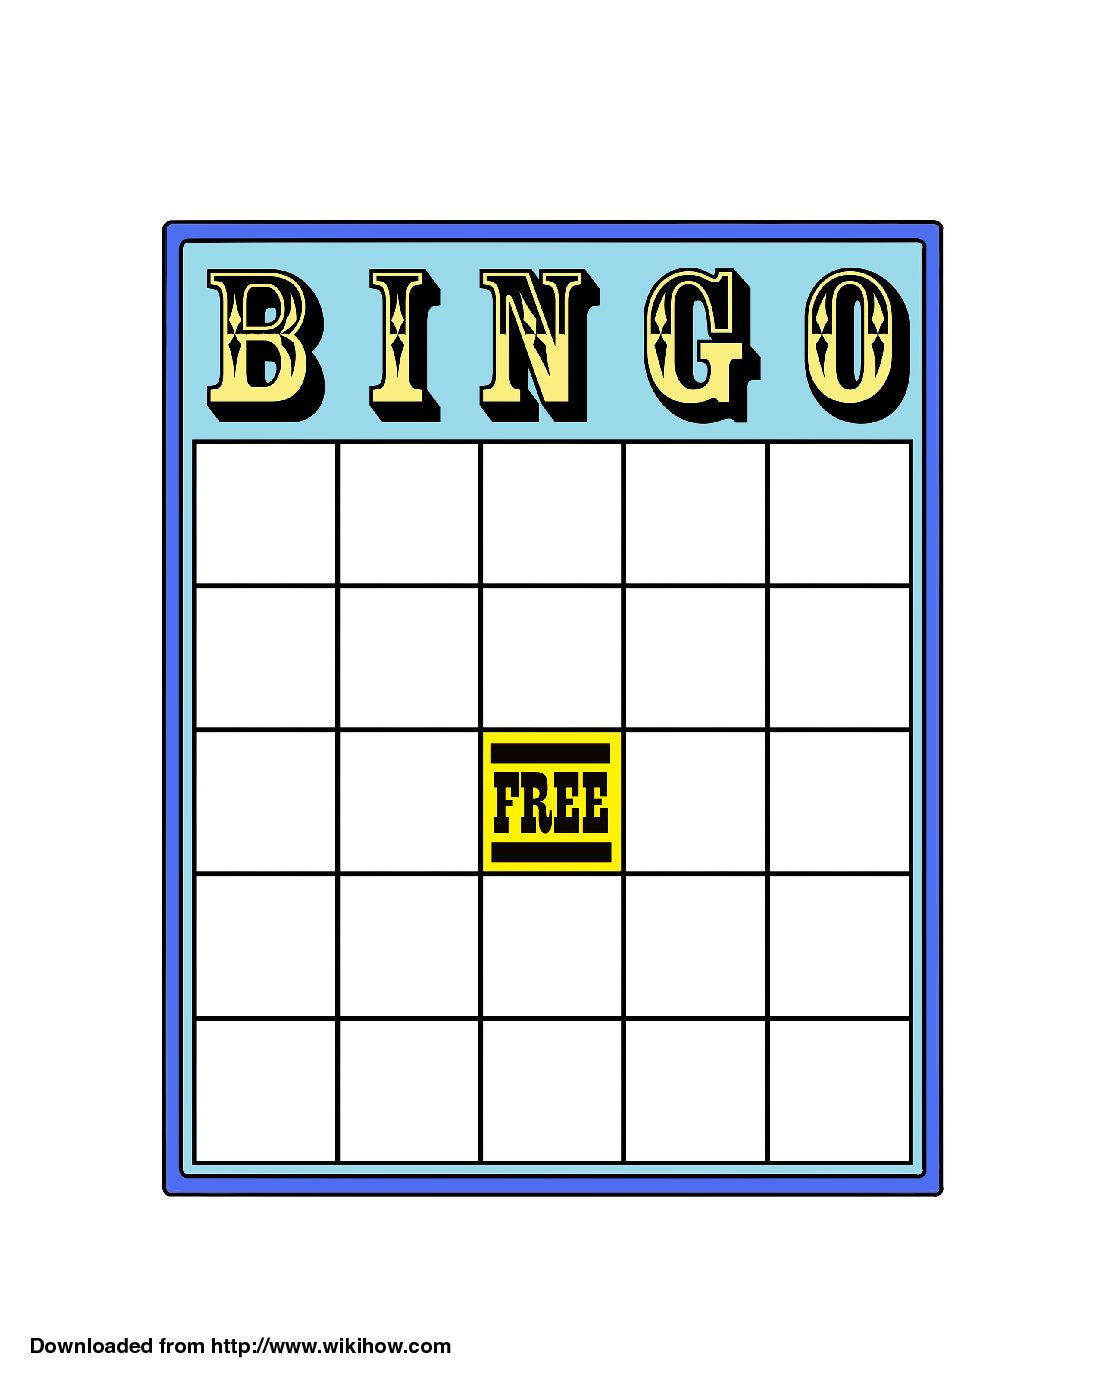 How To Play Bingo 13 Steps With Pictures Wikihow In Blank Bingo Card Template Microsoft Word Business Card Template Word Bingo Template Blank Bingo Cards